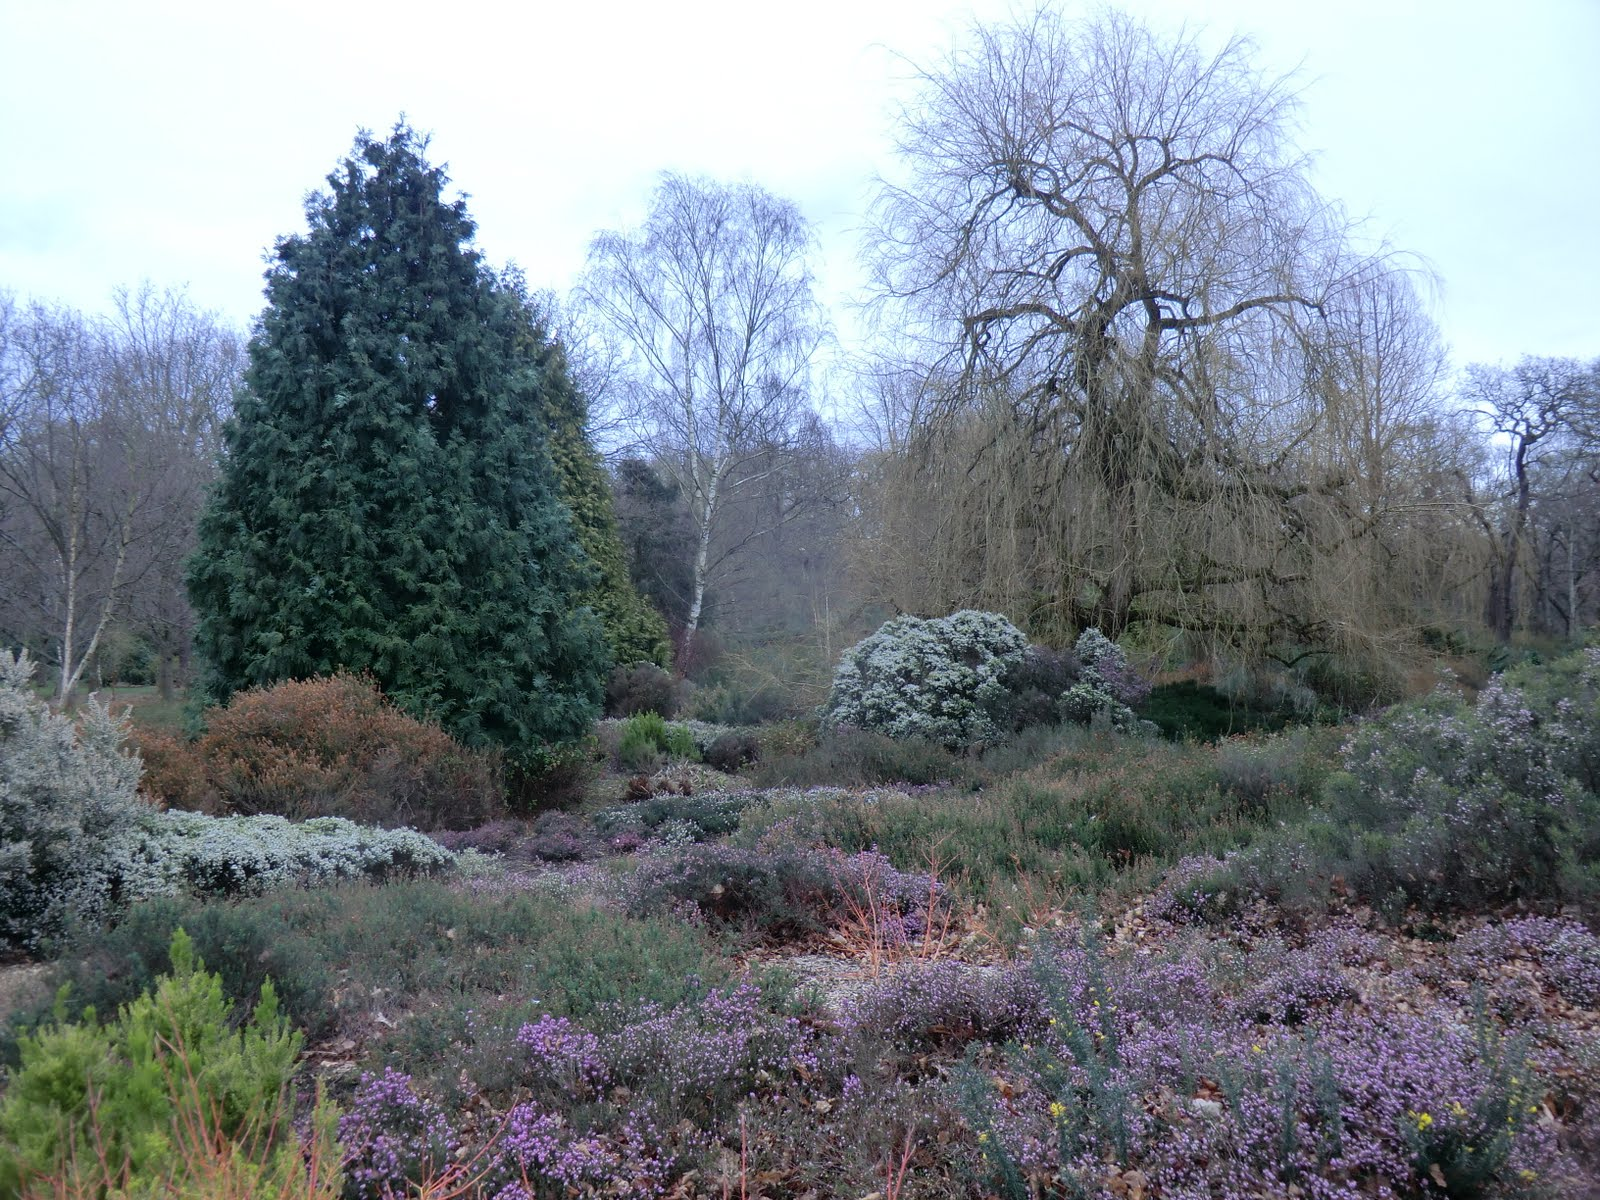 CIMG2780 Heather Garden, Isabella Plantation